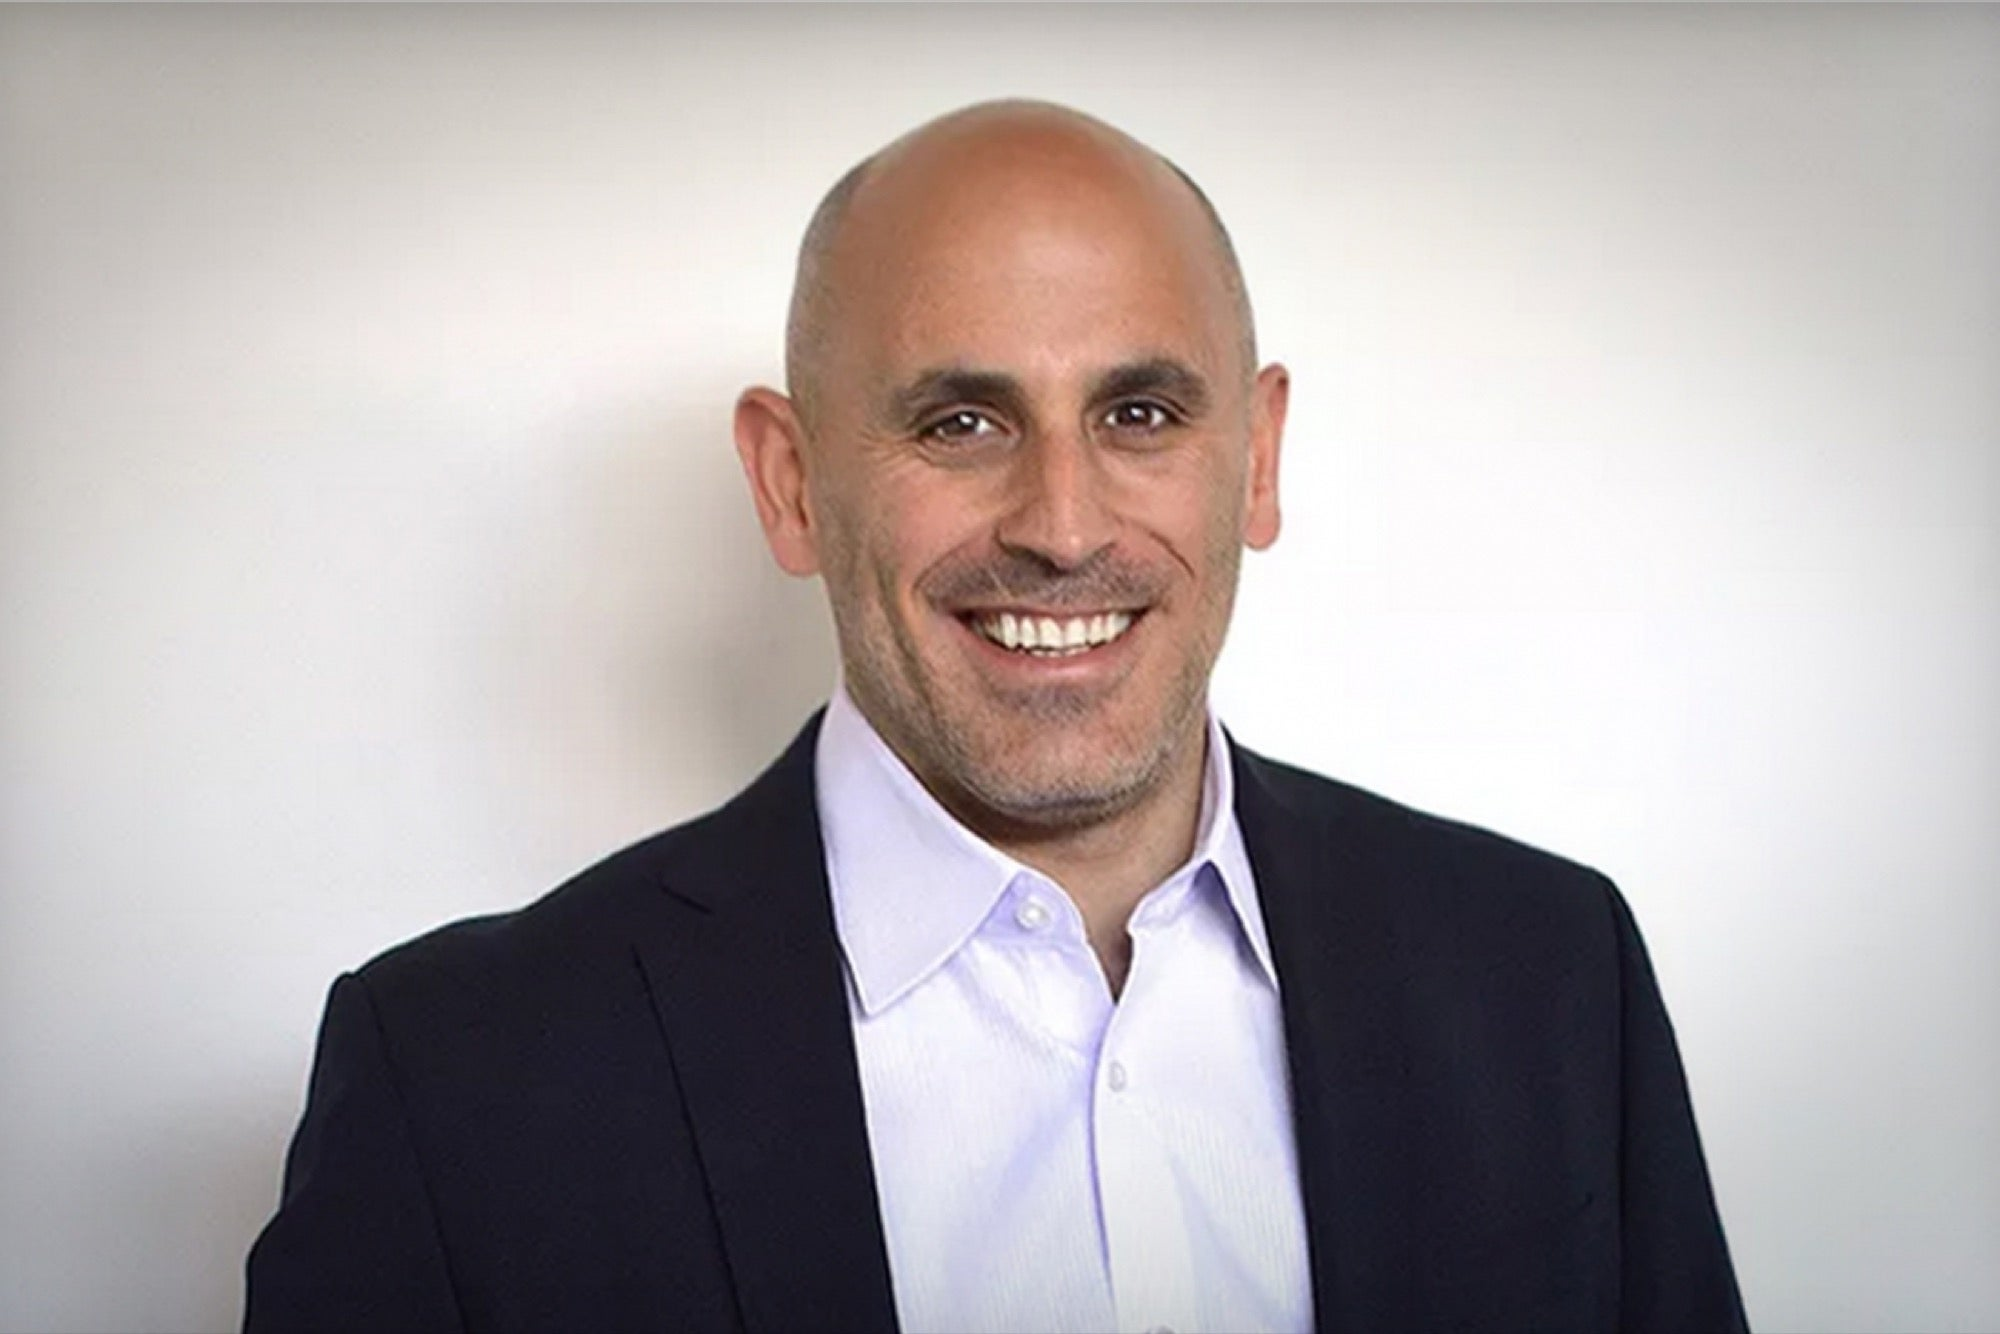 Jet Com S Founder Marc Lore 3 Things You Need To Know About The Man Taking On Amazon